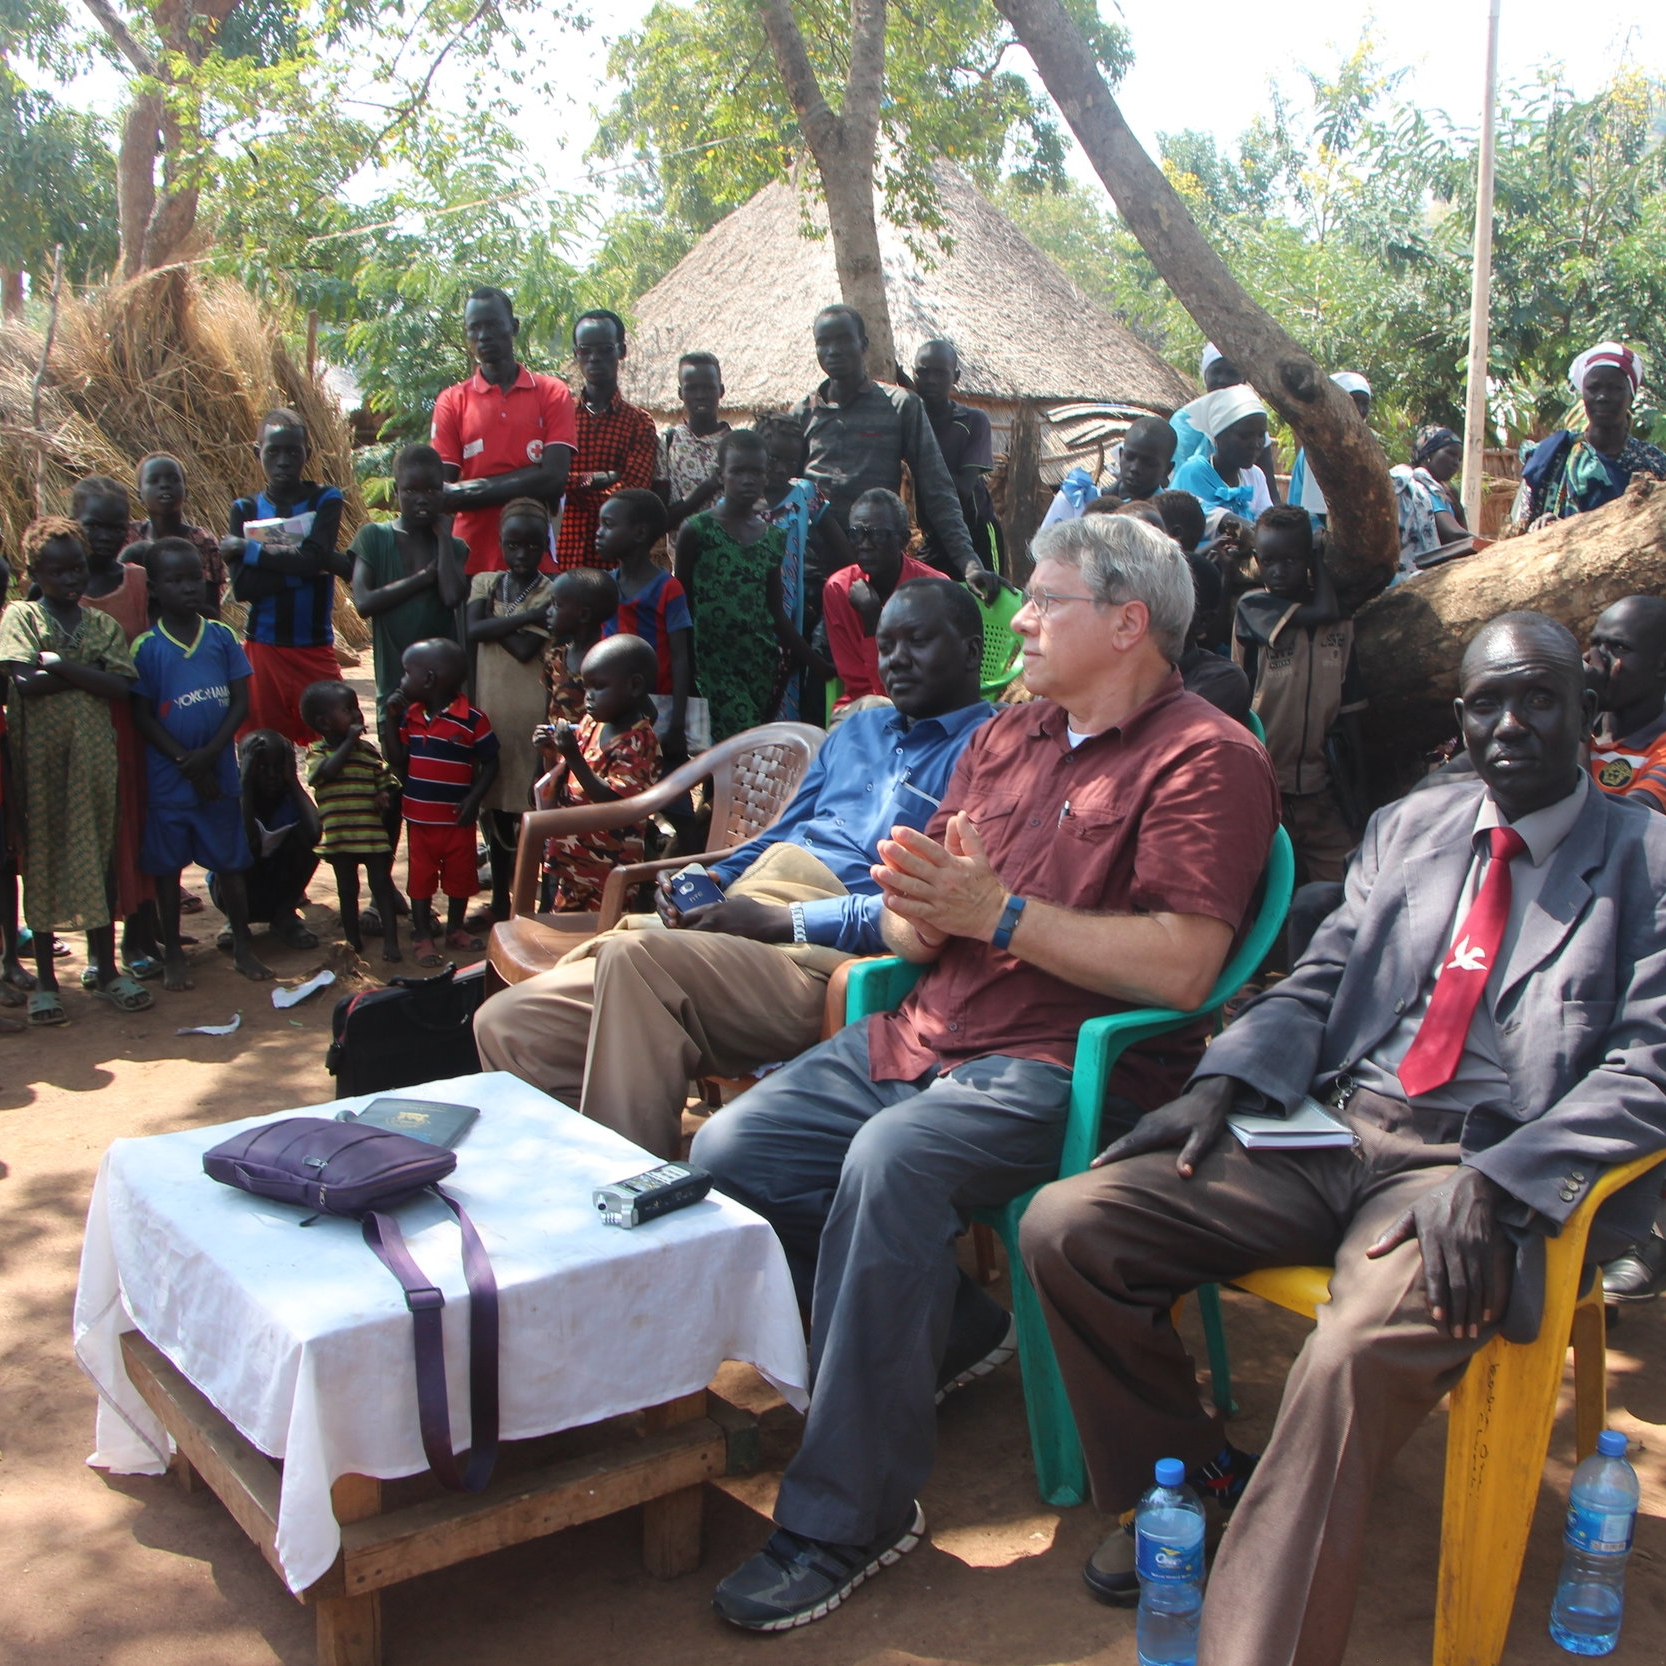 Official welcome to Nguenyiel camp –  Dr. Frank Dimmock is flanked on his left by the Rev. Simon Chan Luak from Nguenyiel and by the Rev. James Gatdet of the Mekane Yesus Church on his right.